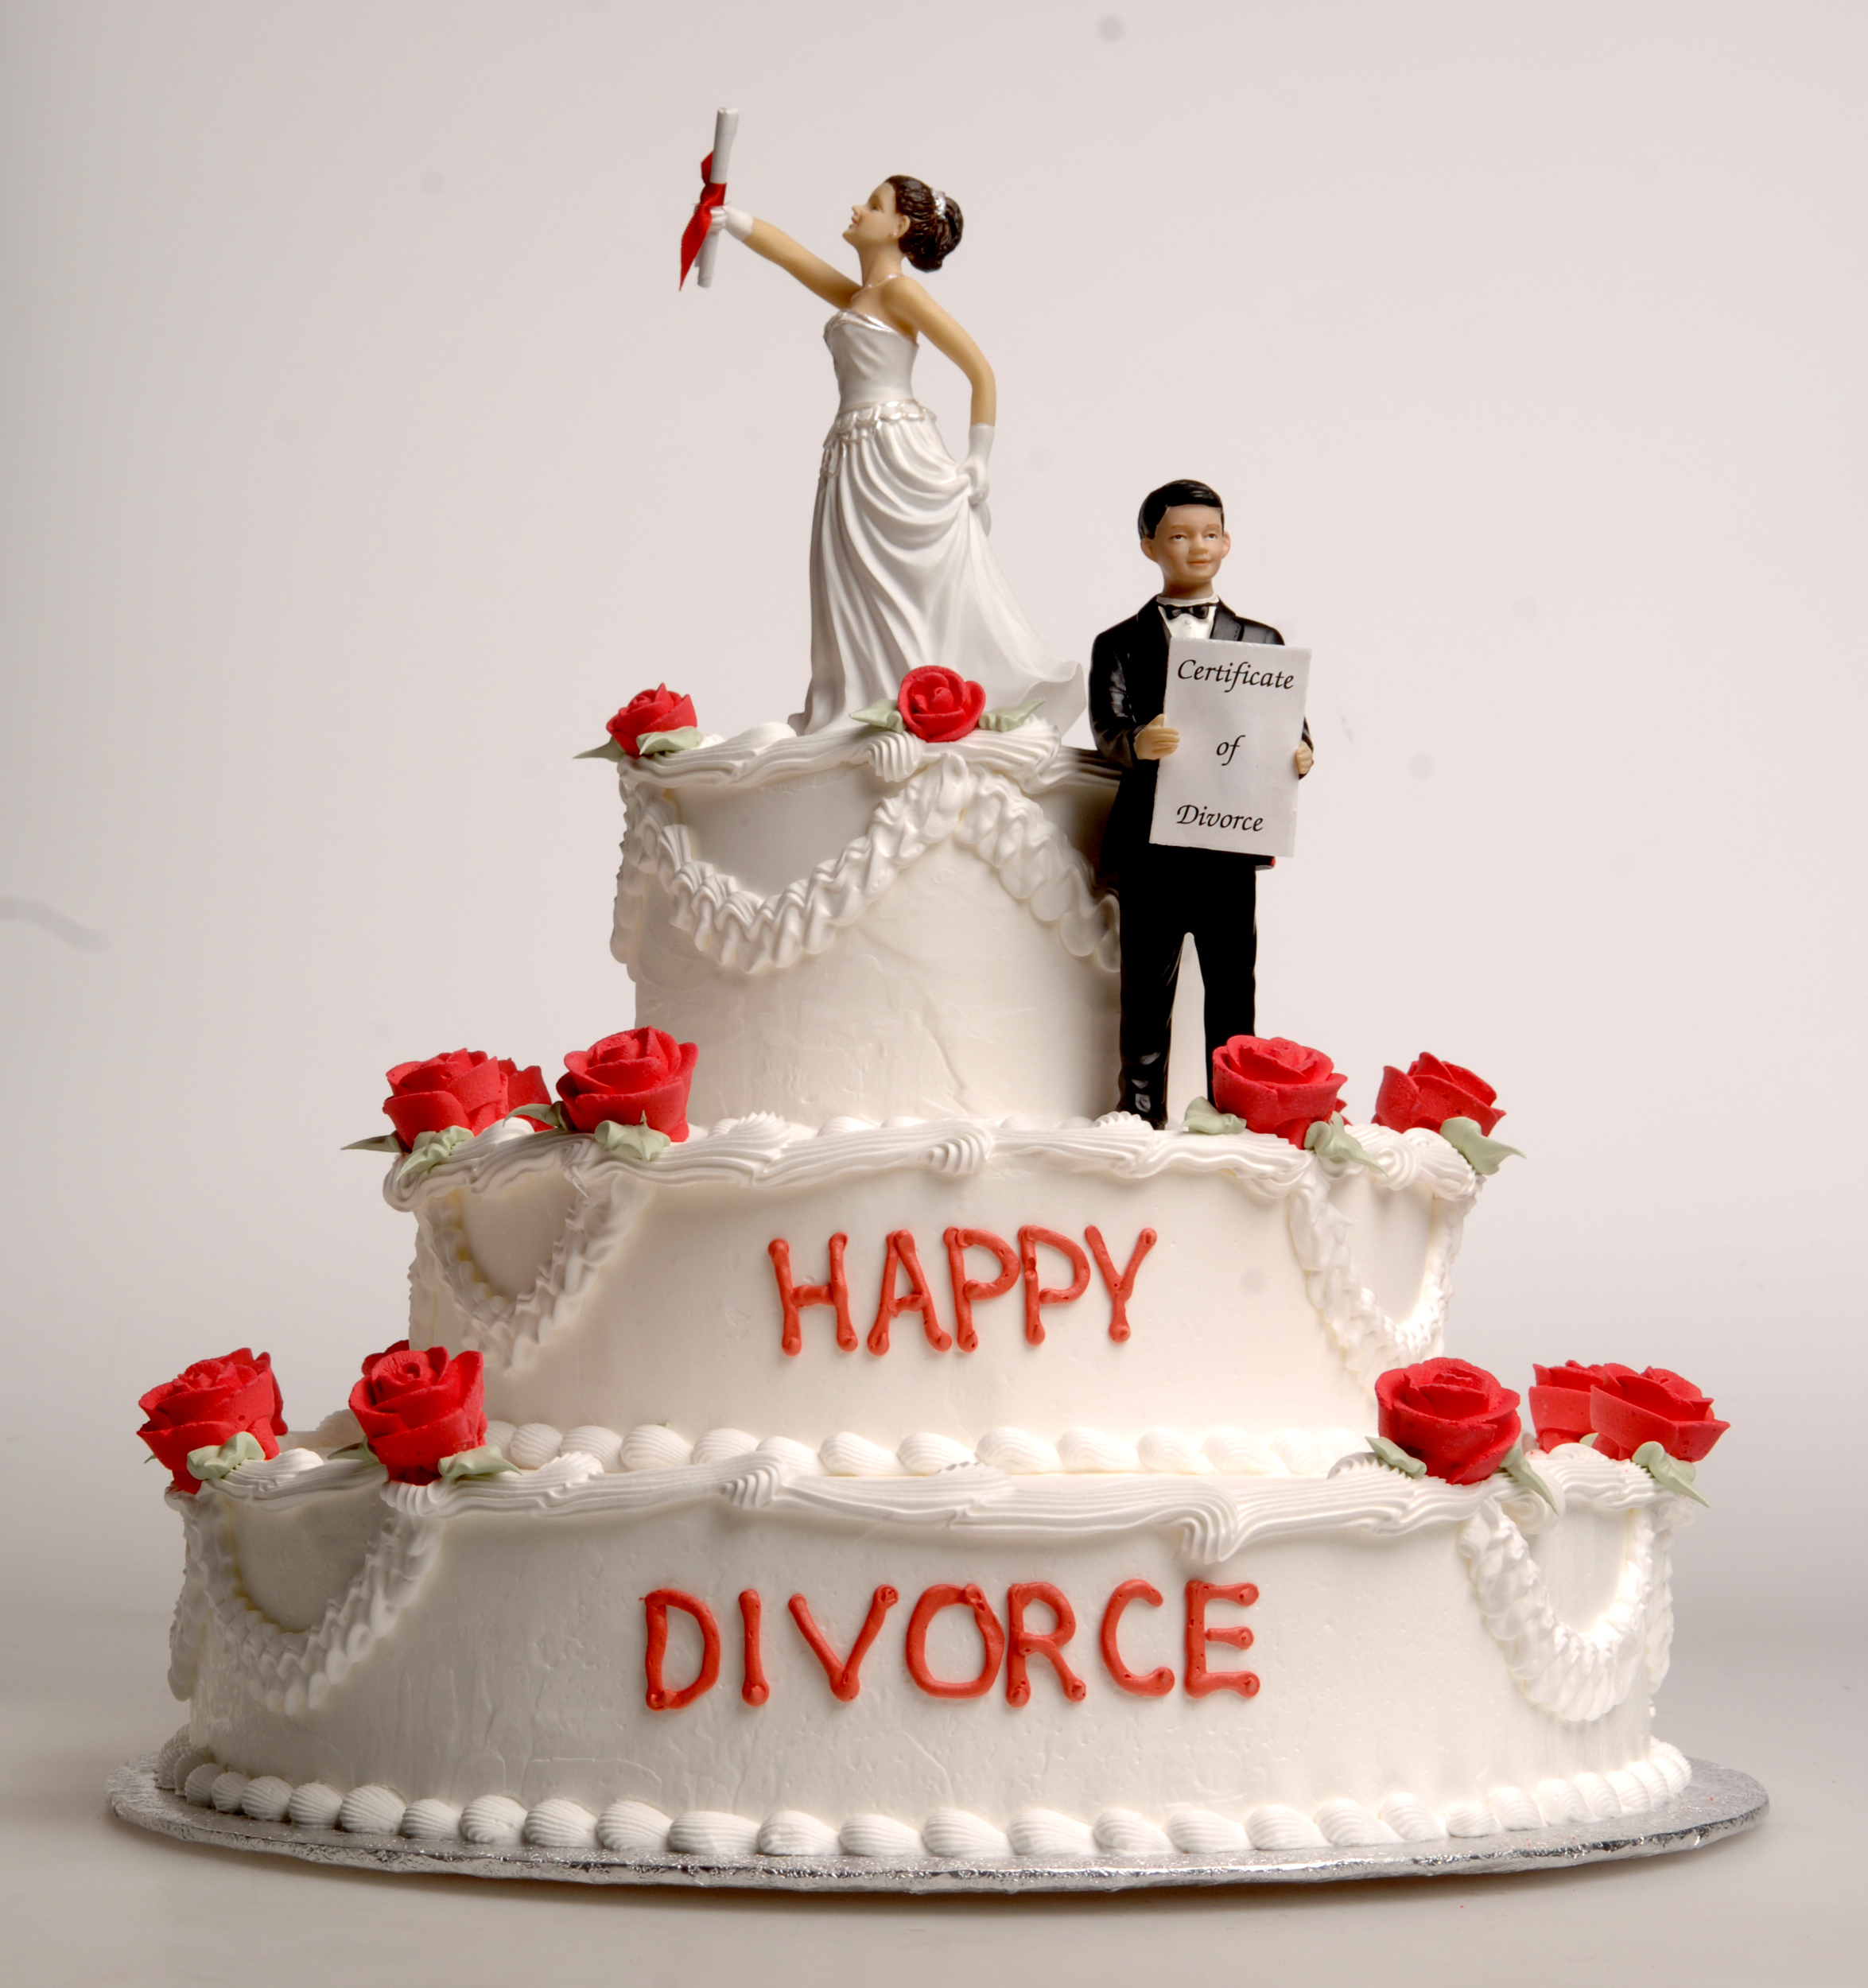 Today S Divorces Can Mean Cake And Eating It Too Aol News